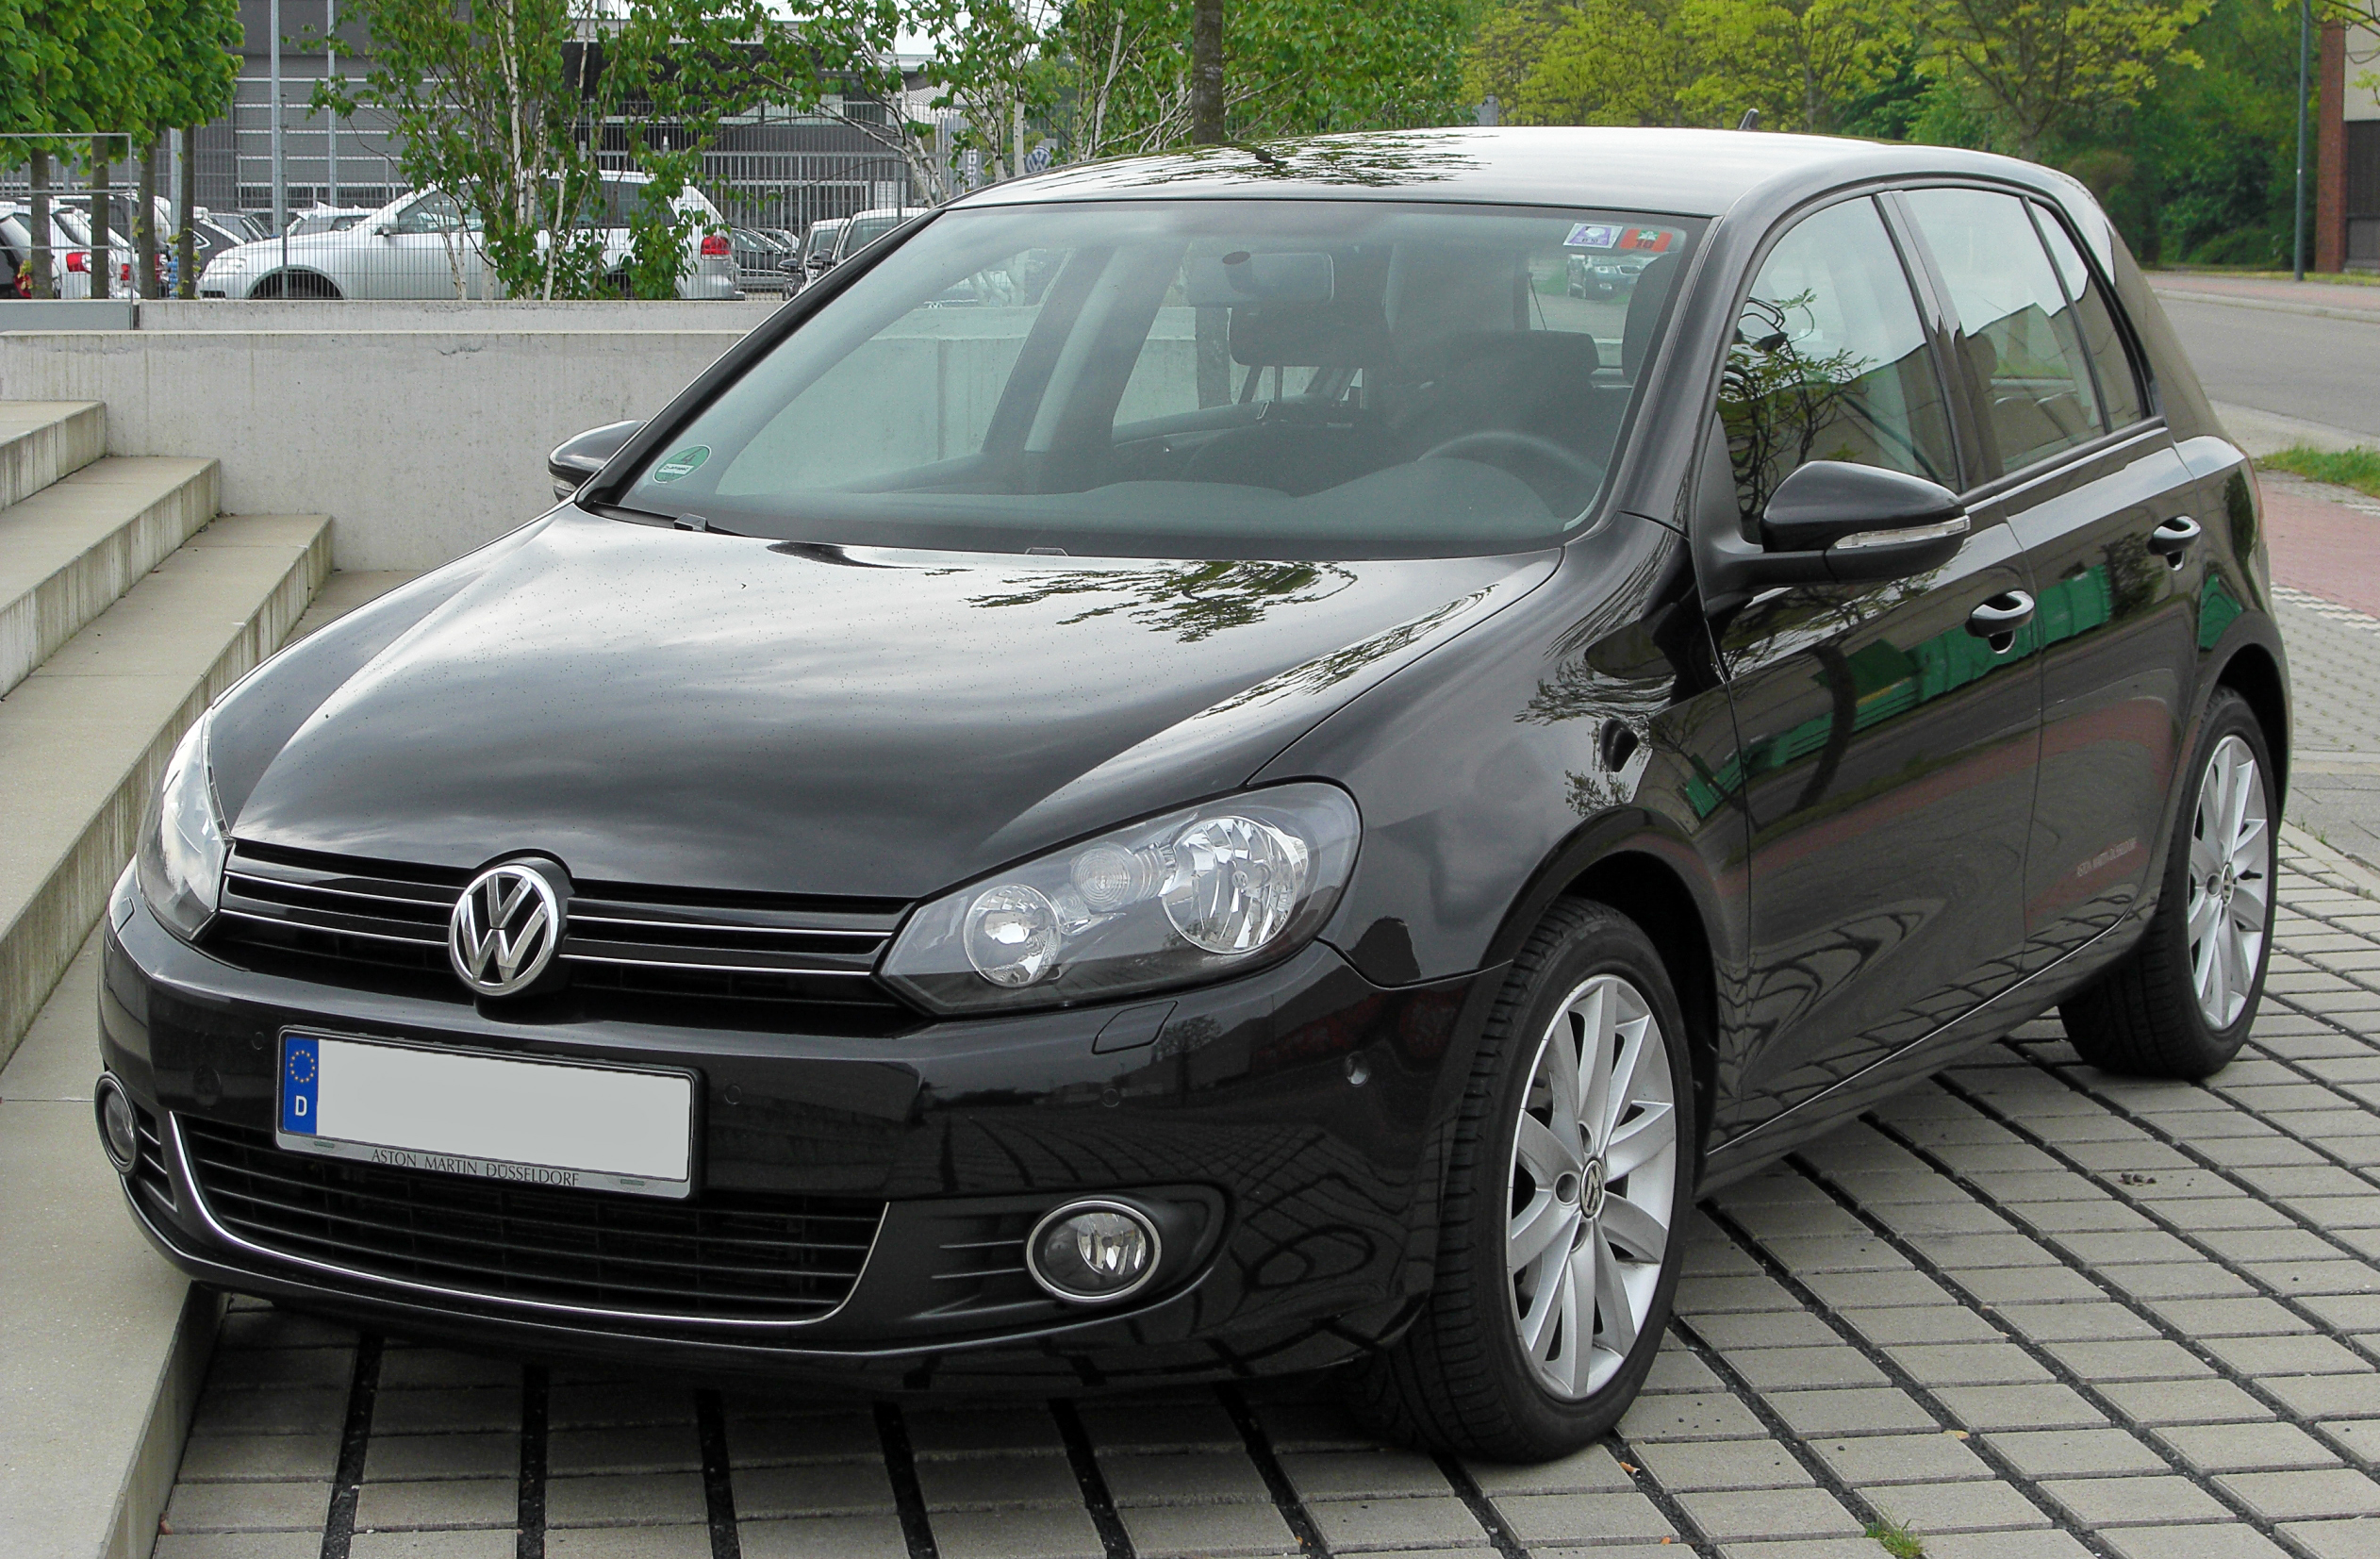 datei vw golf vi 2 0 tdi front wikipedia. Black Bedroom Furniture Sets. Home Design Ideas